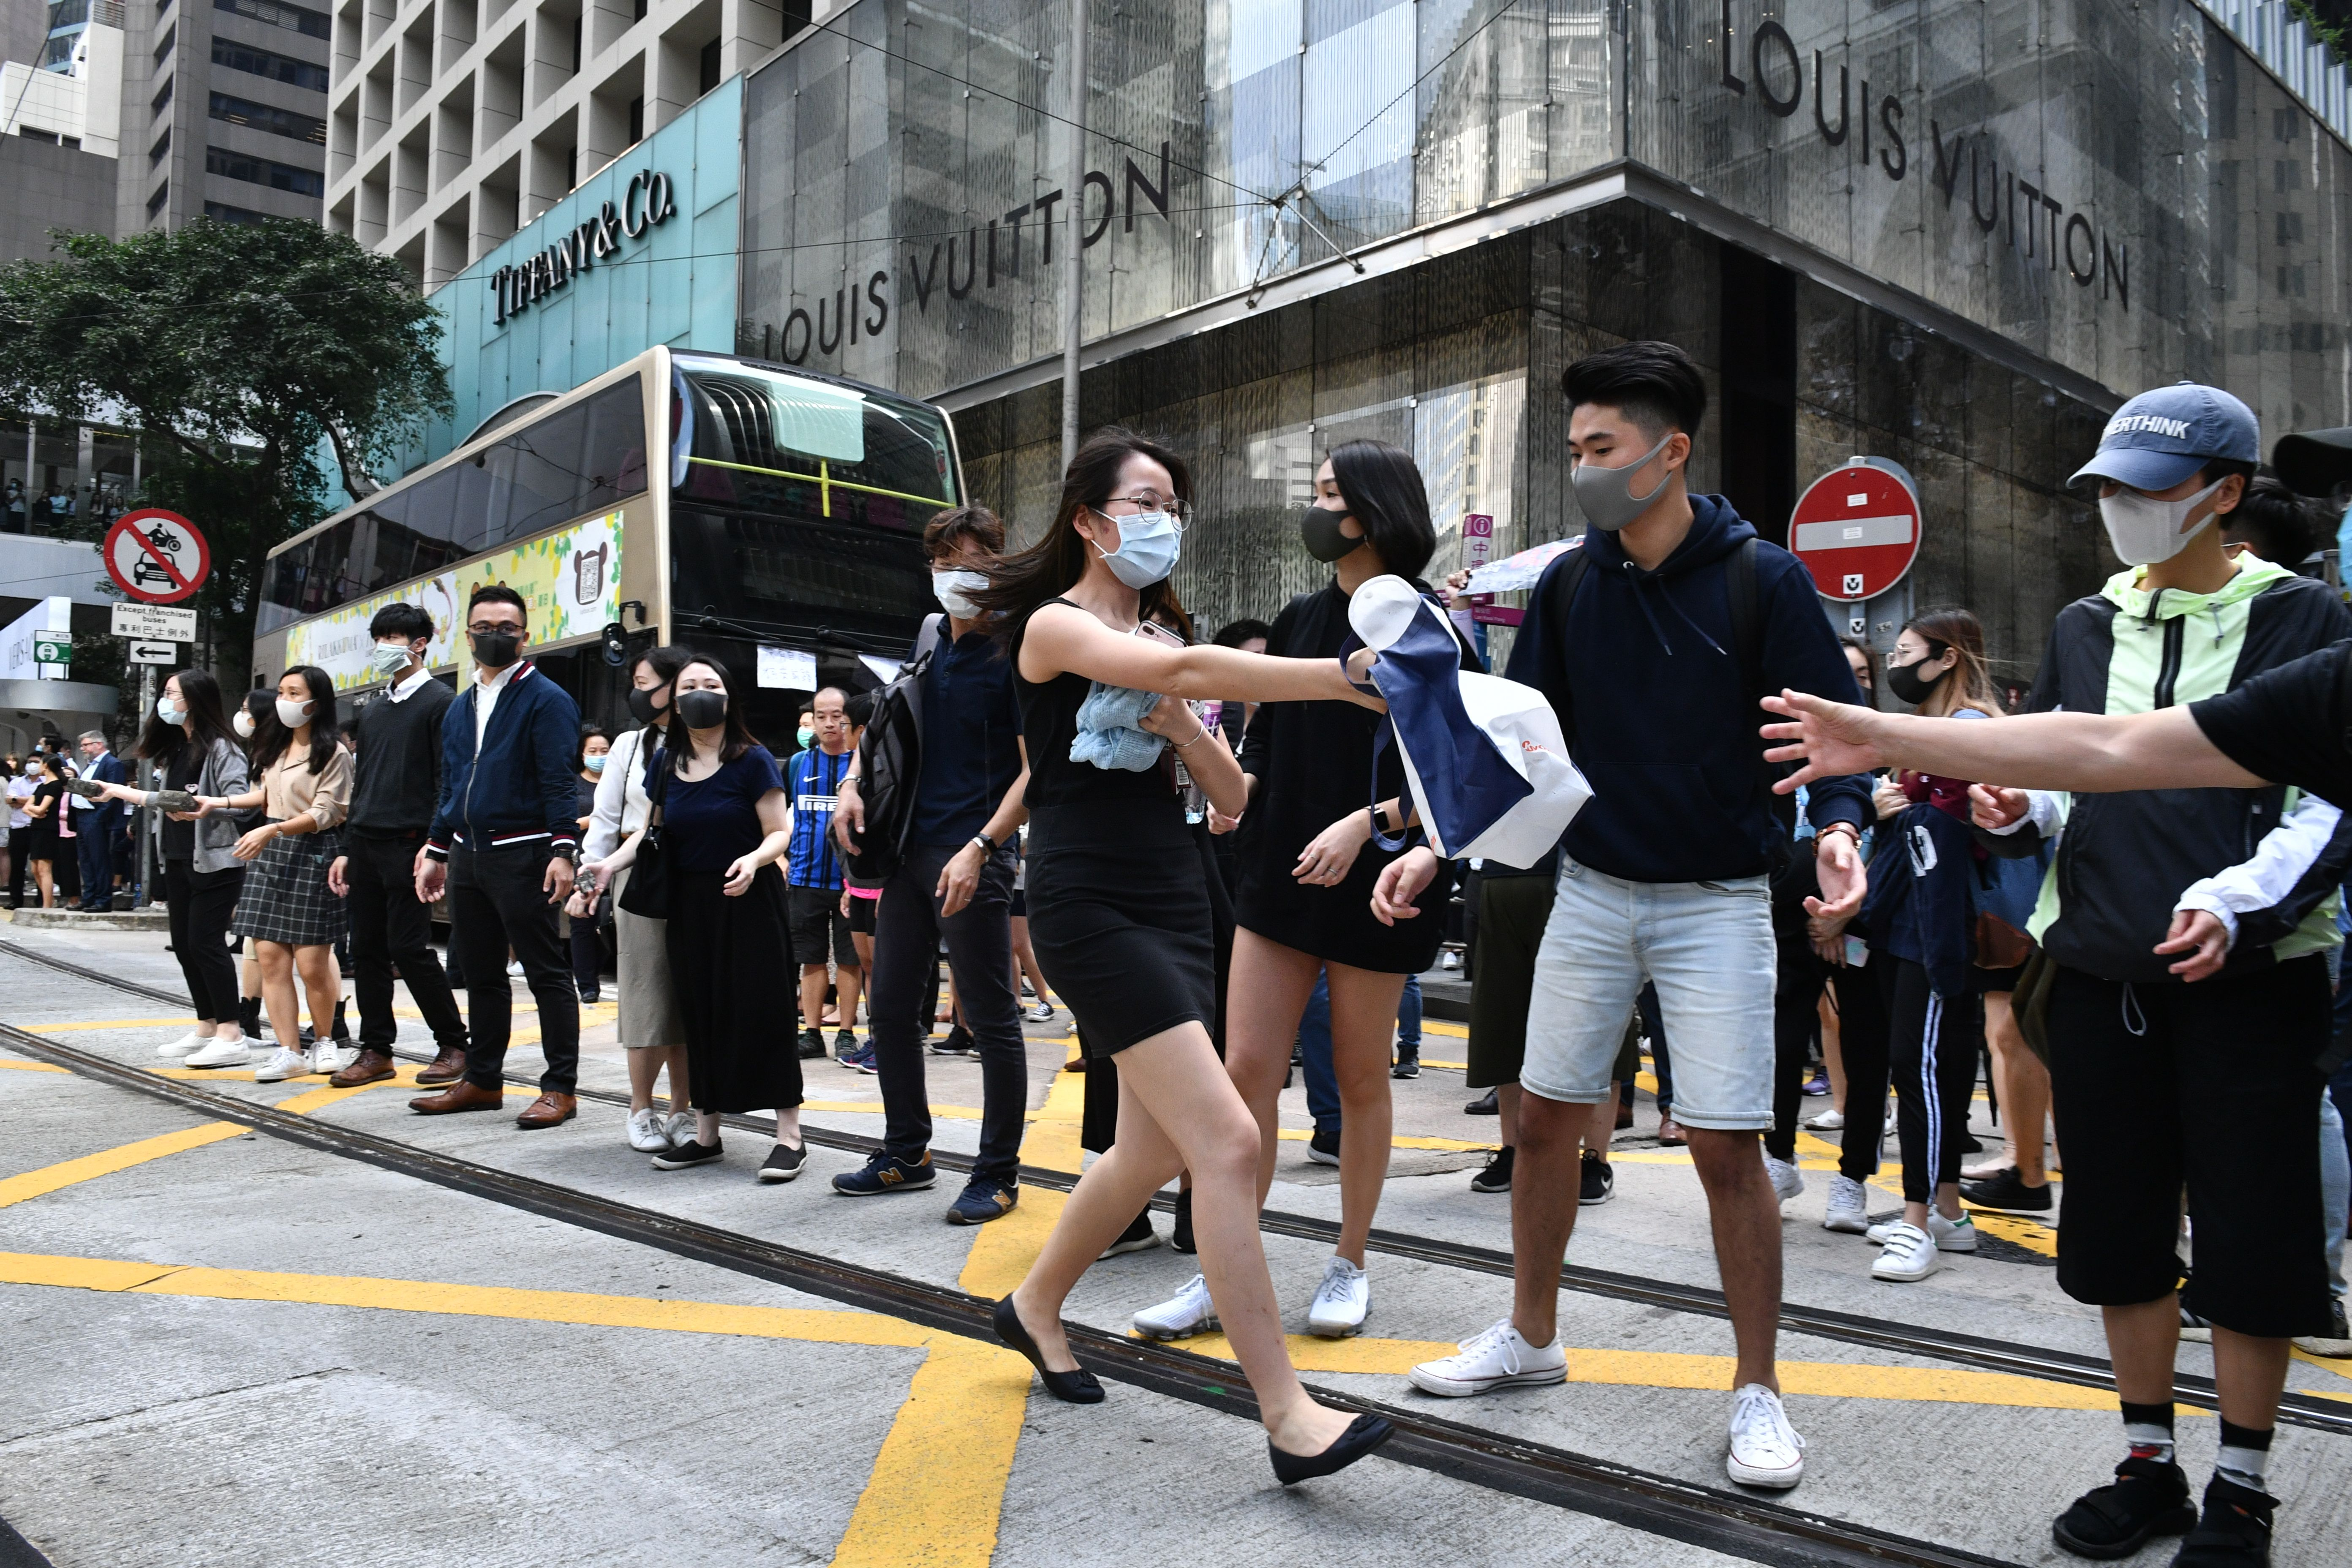 Office workers and pro-democracy protesters form a human chain to pass bricks during a demonstration in Central in Hong Kong on November 12, 2019.